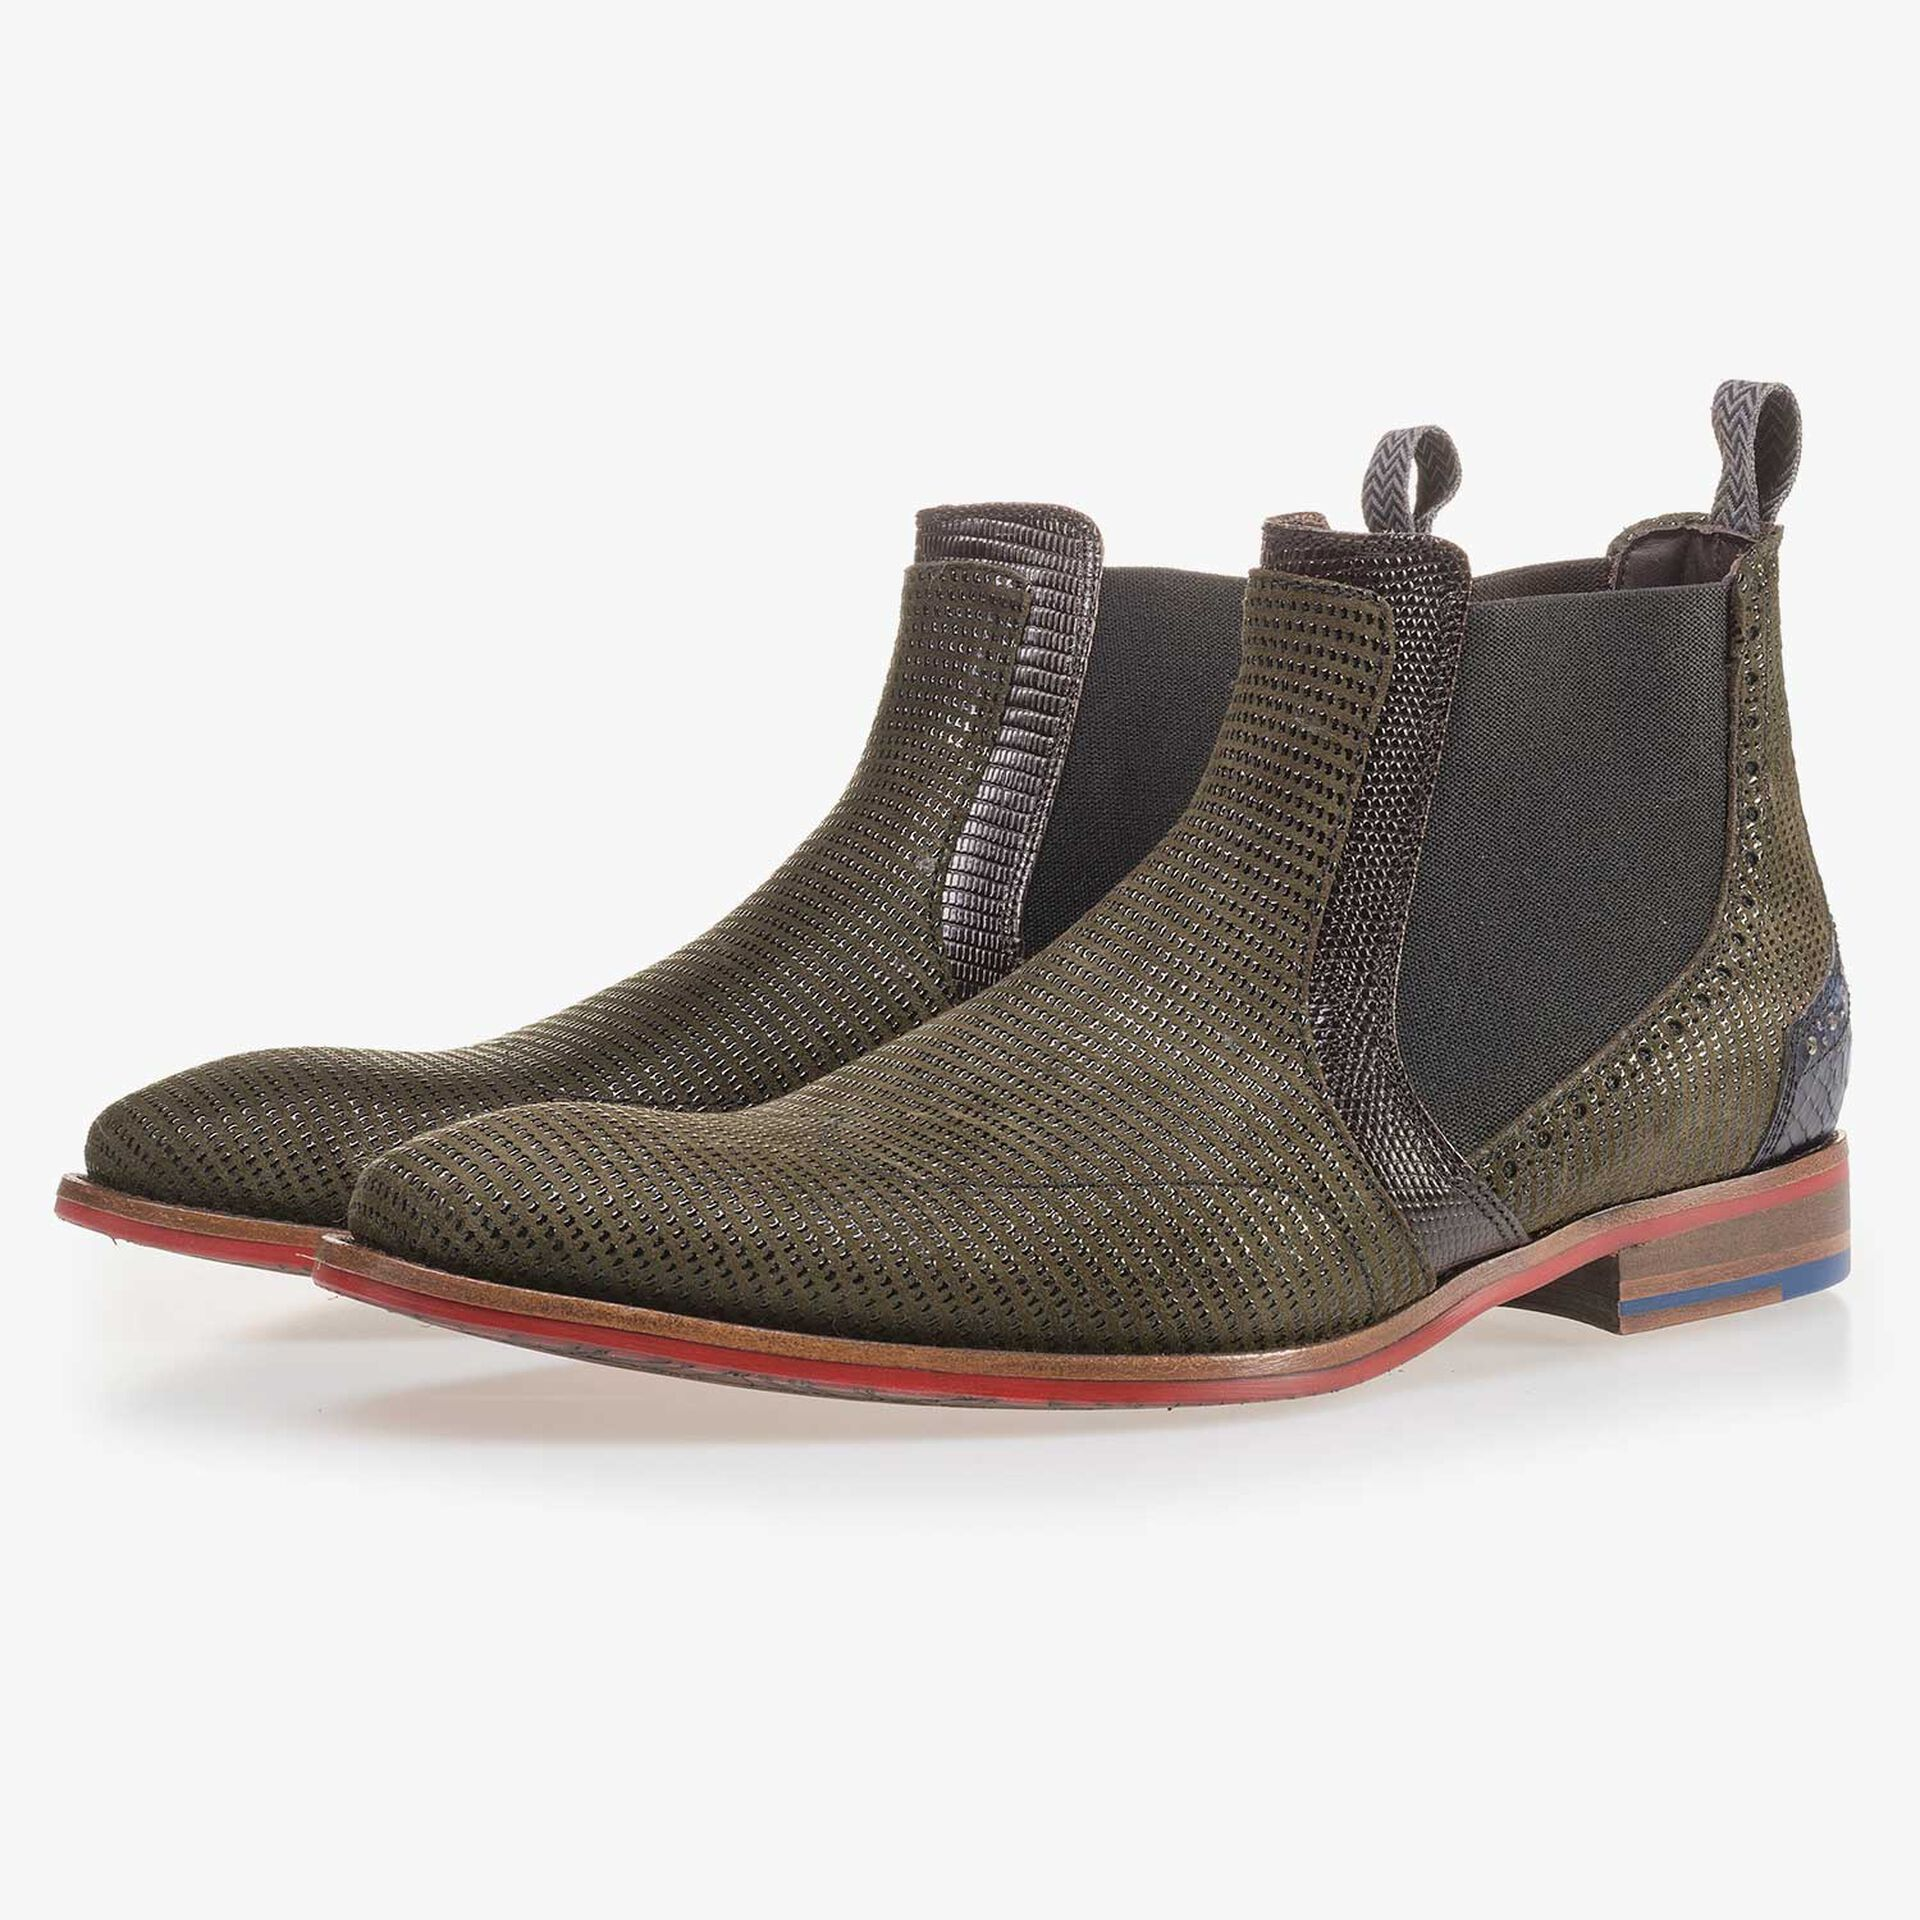 Olive green Chelsea boot made of suede leather